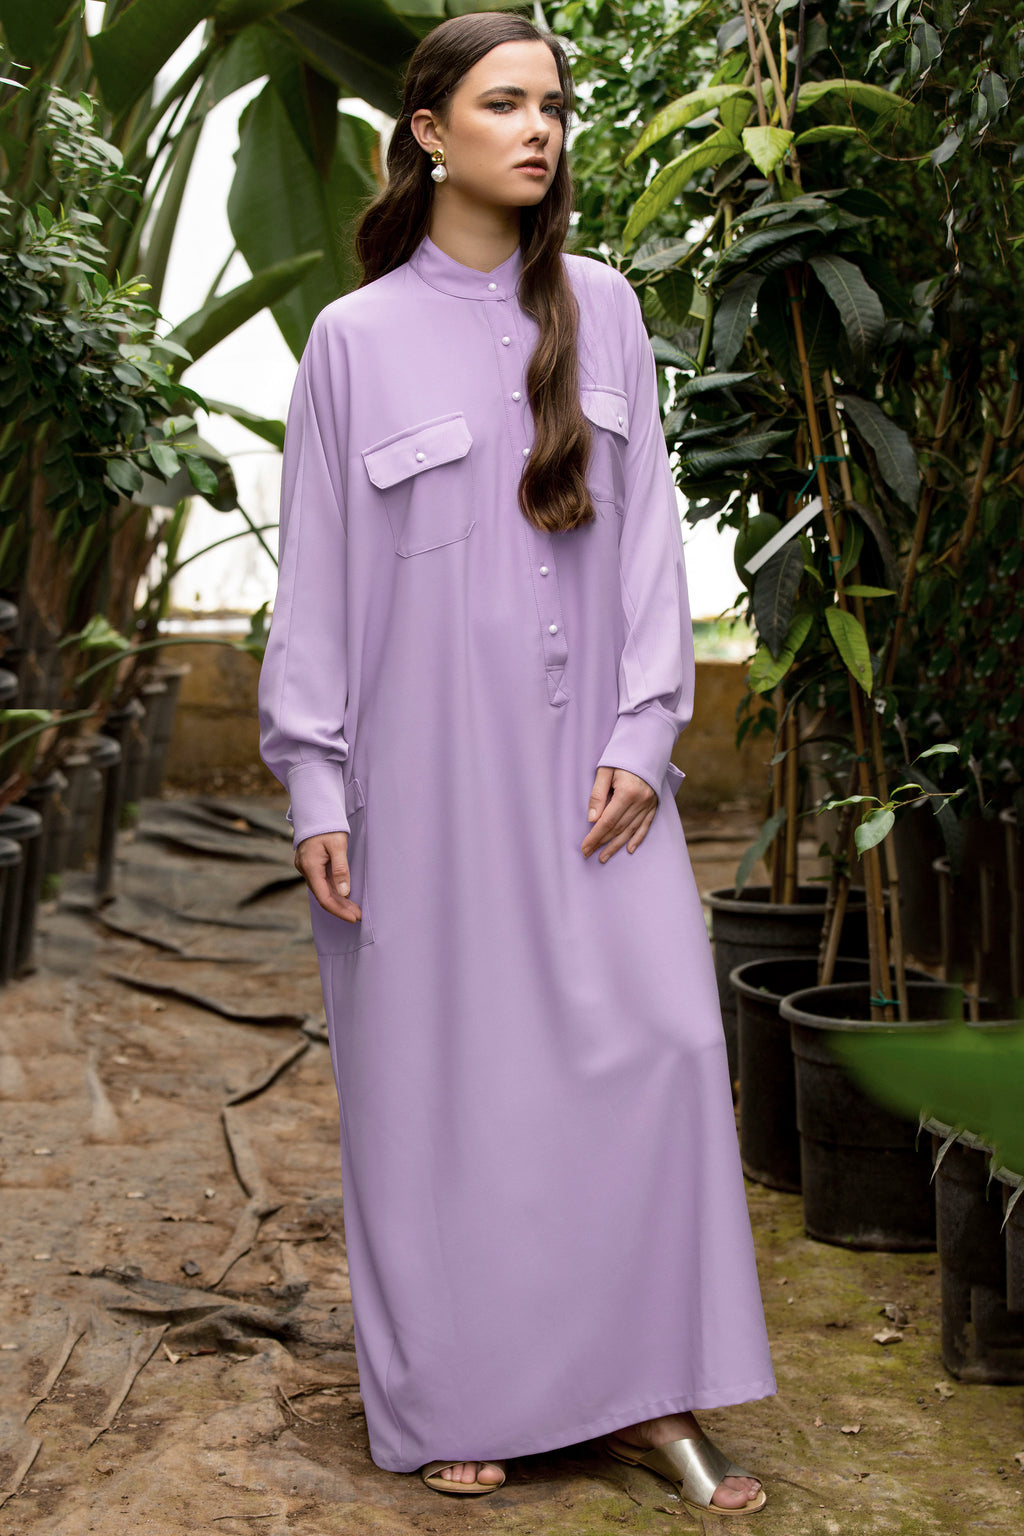 Jenna Oversized Maxi Shirtdress - Lilac